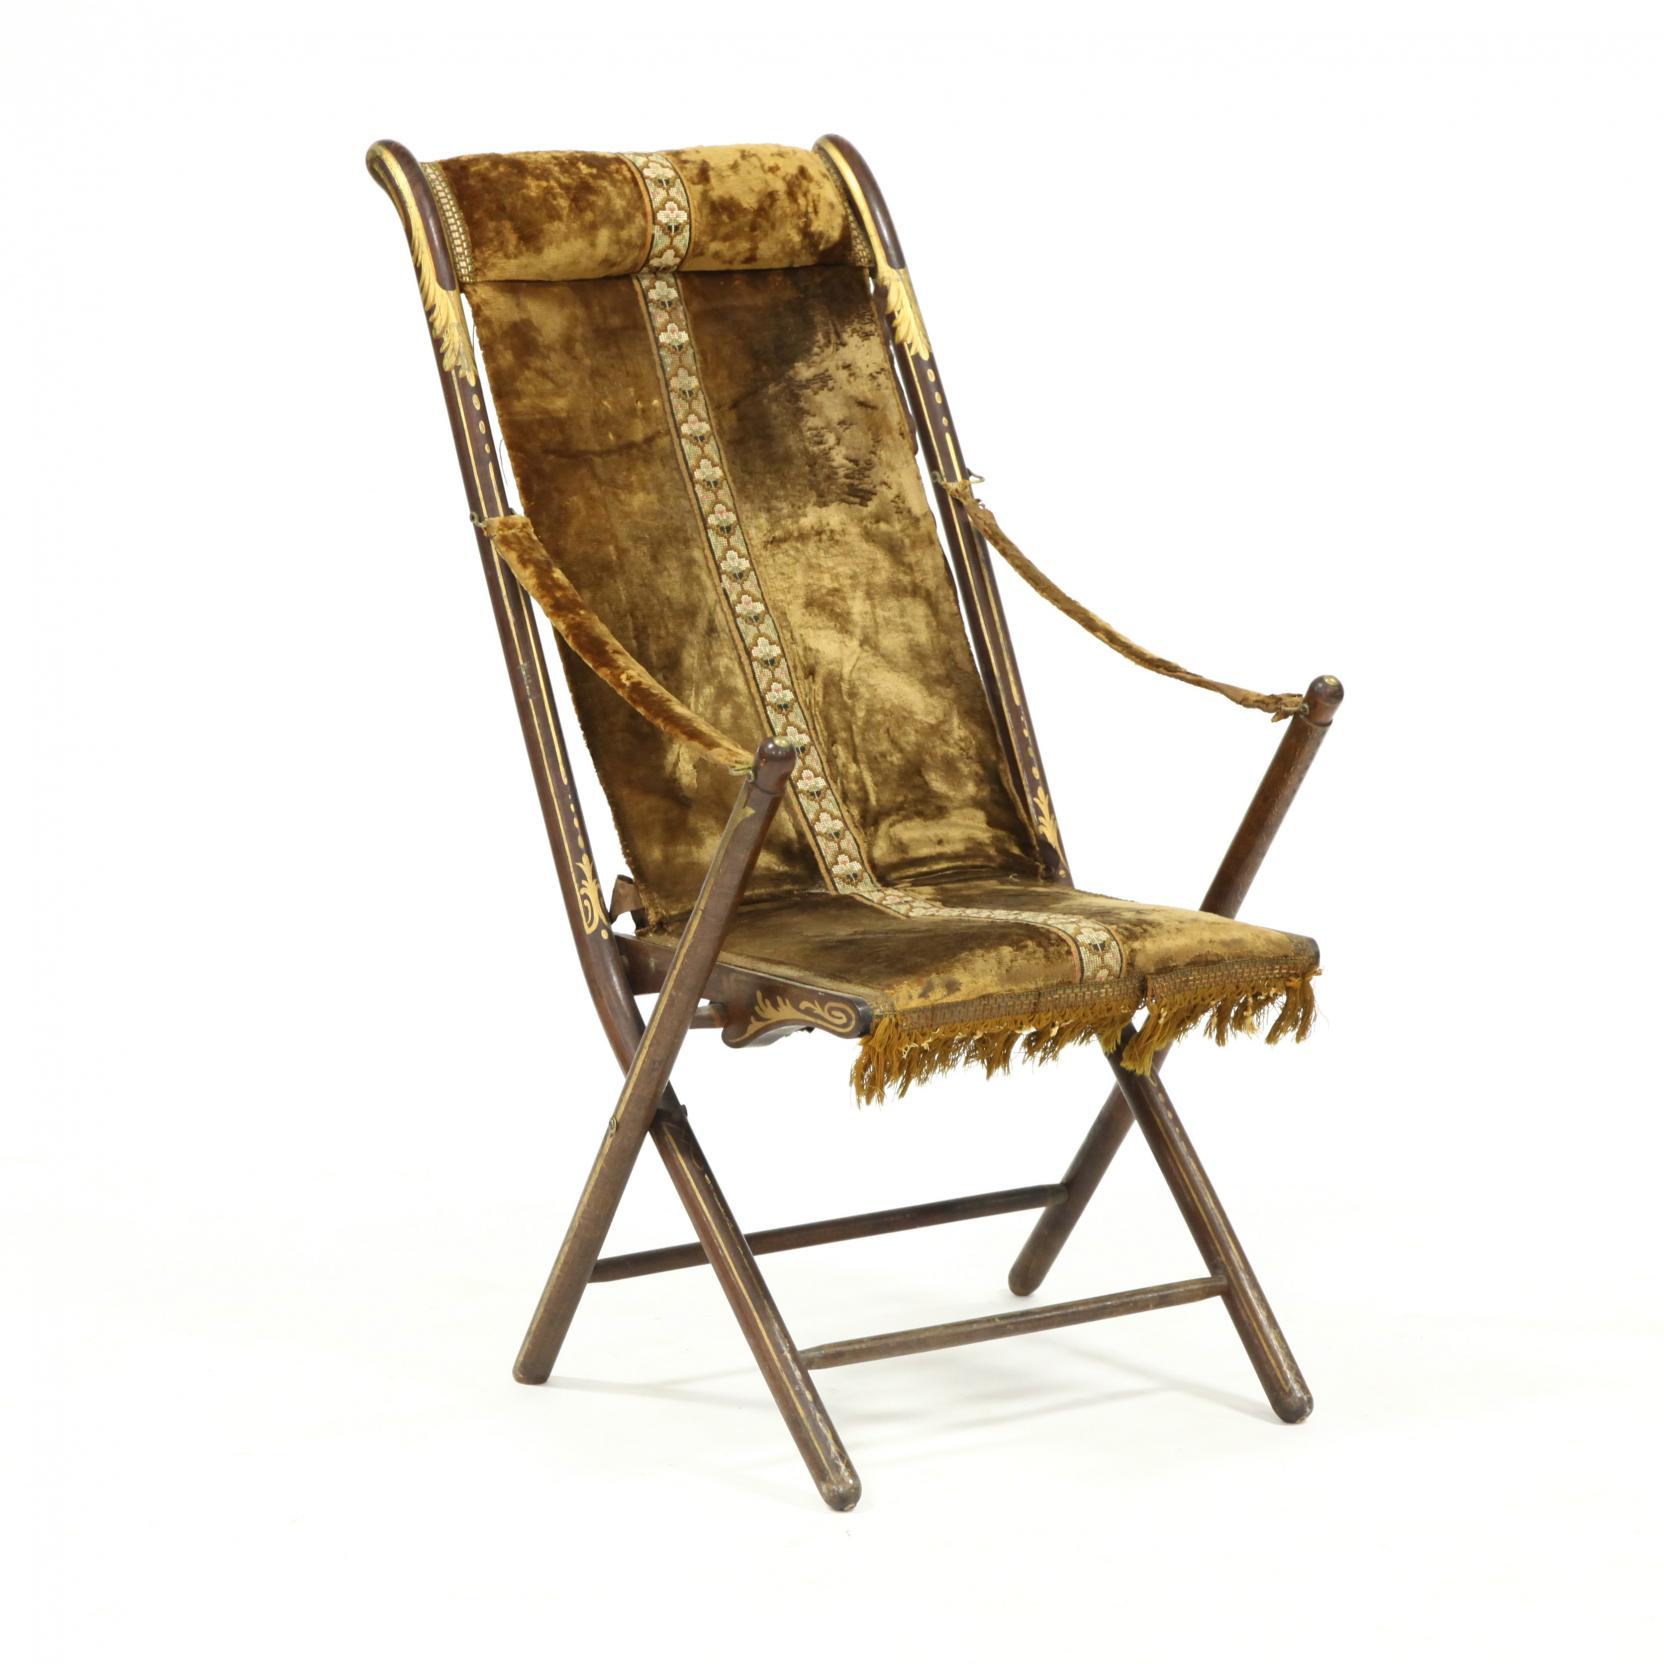 signed-french-gilt-decorated-campaign-arm-chair